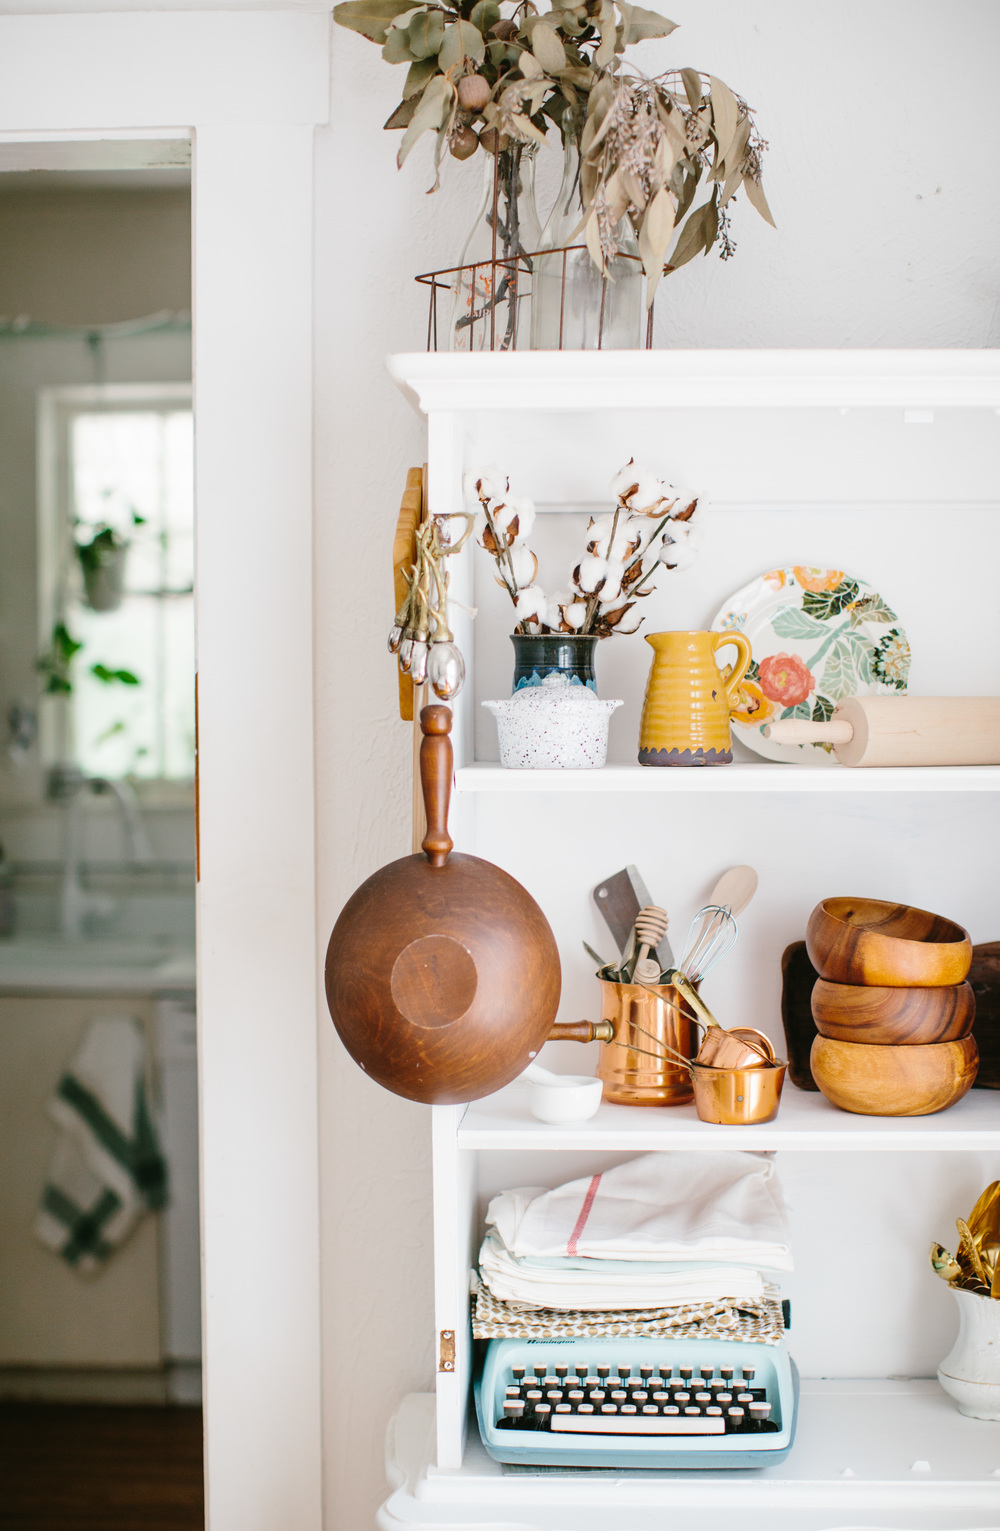 Kitchen inspiration | Open shelving | Beach home inspiration | Shannon Kirsten Home Tour | The School of Styling - http://www.theschoolofstyling.com